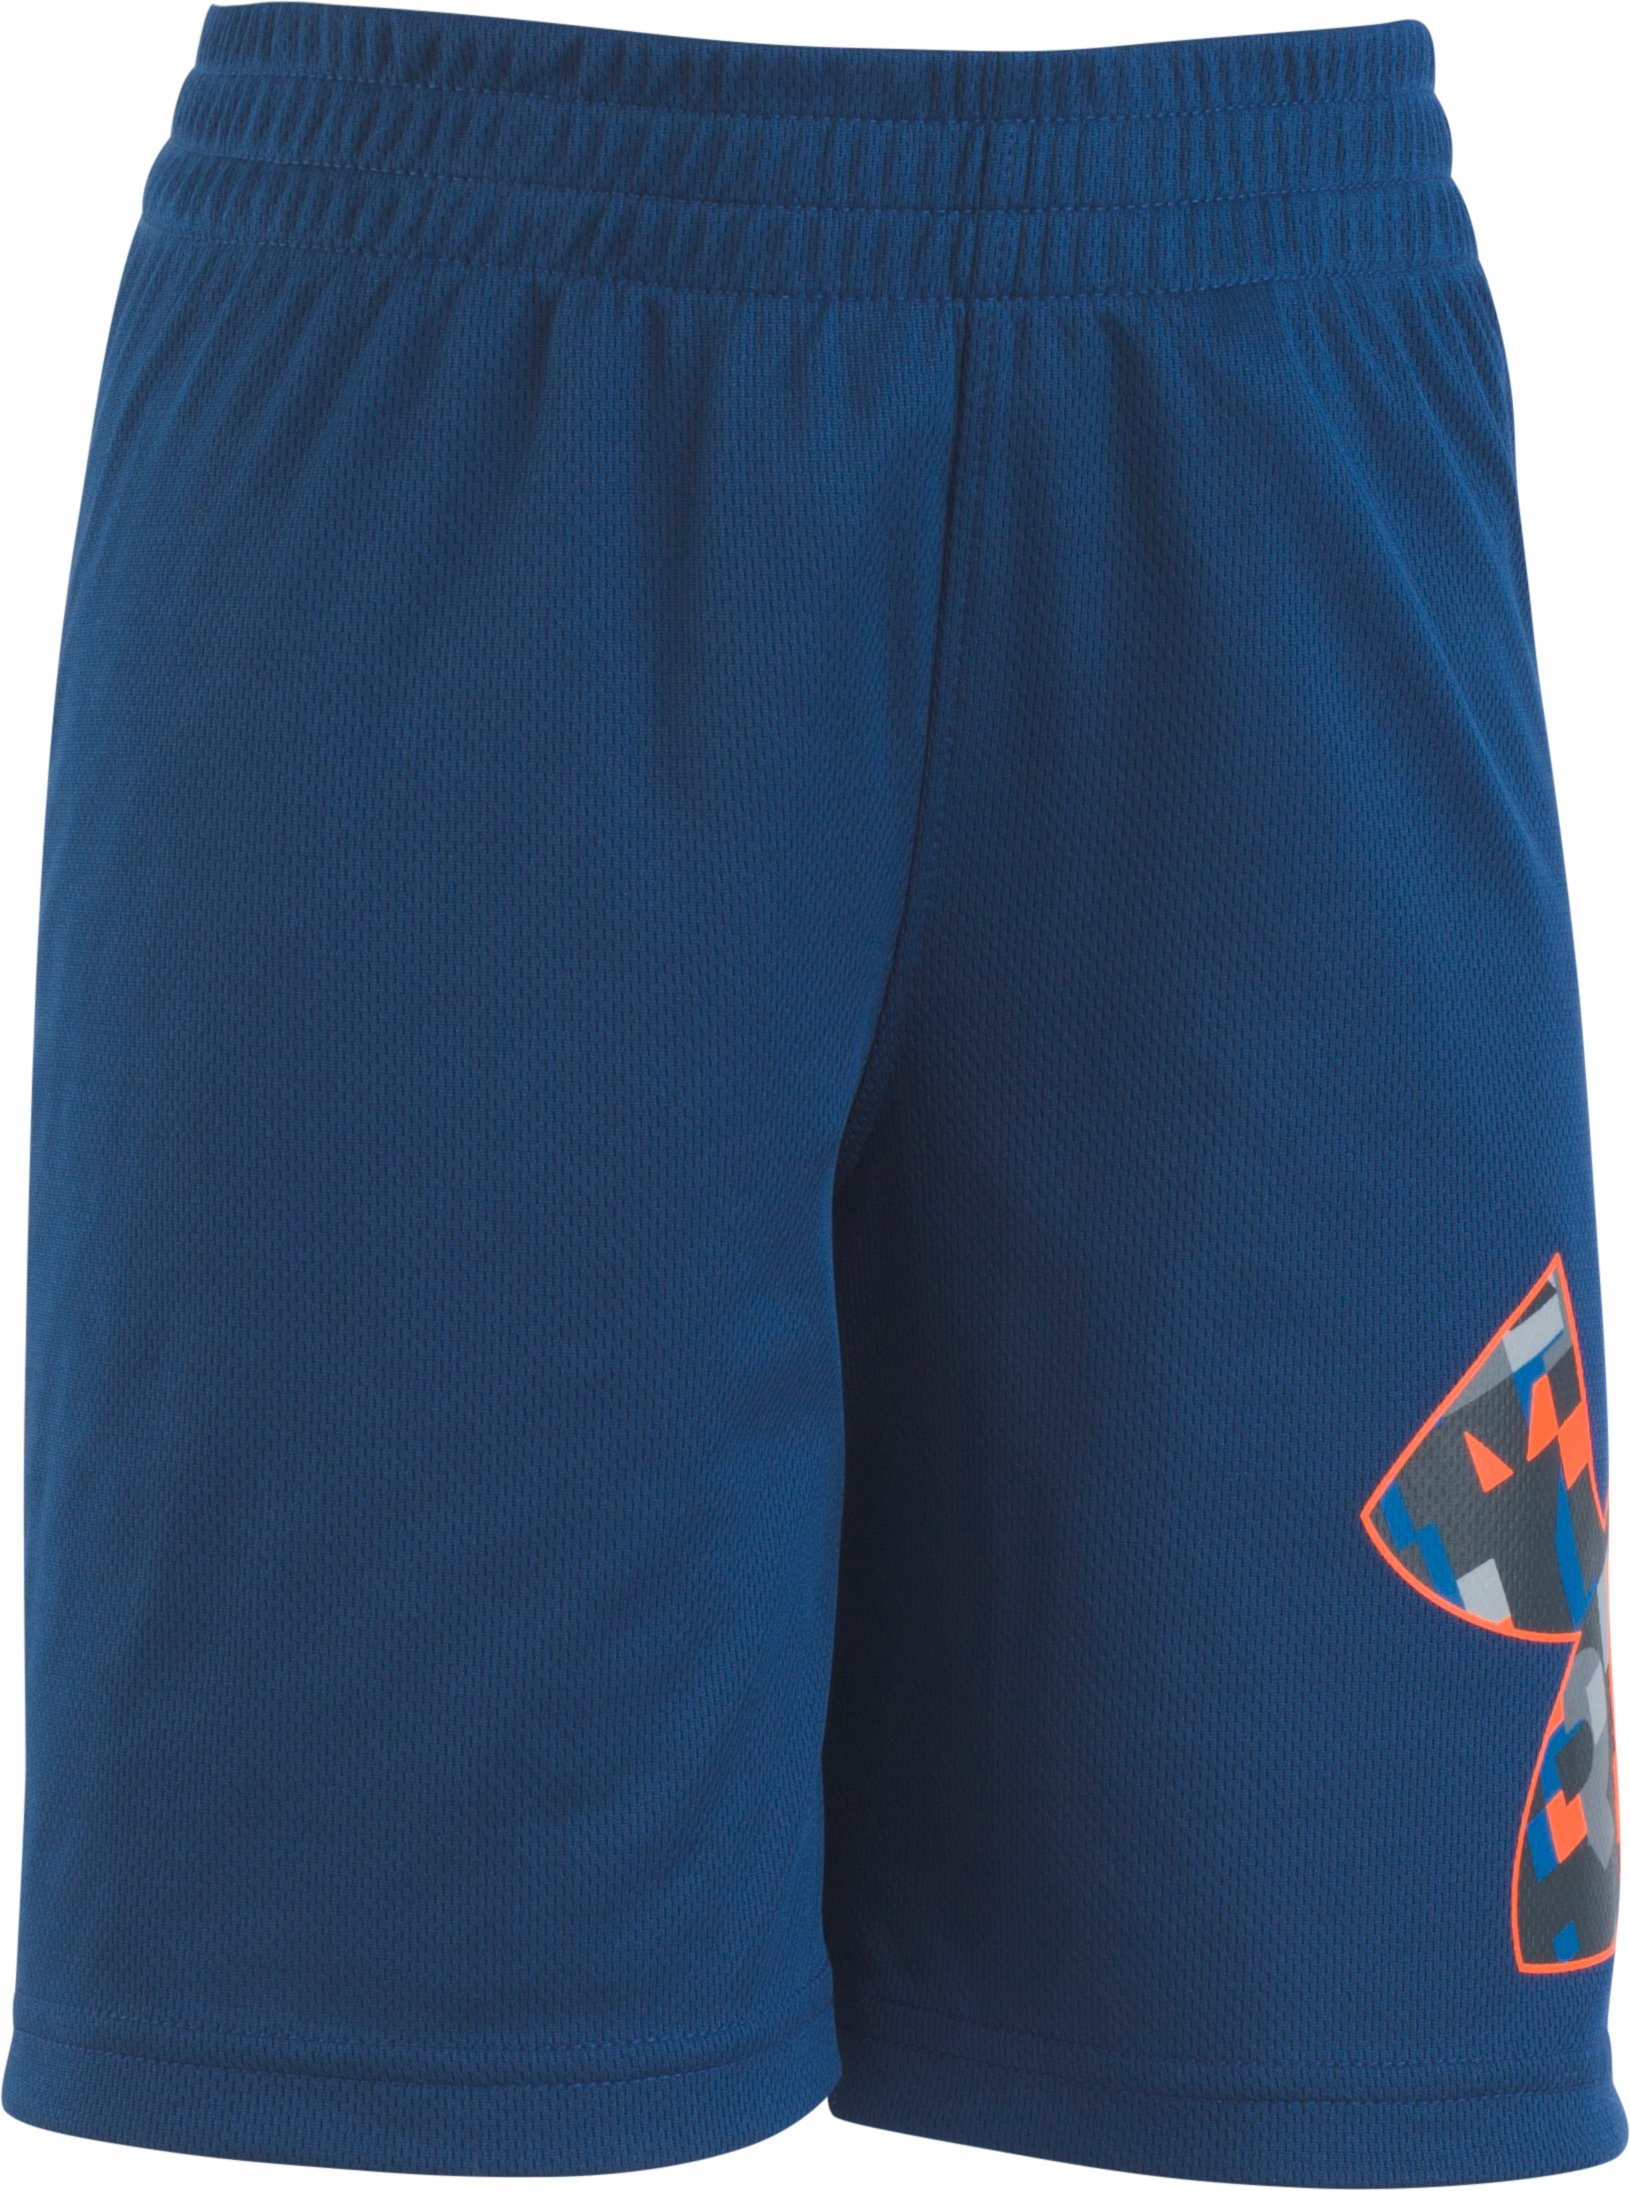 Boys' Pre-School UA Wordmark Striker Shorts, Moroccan Blue, zoomed